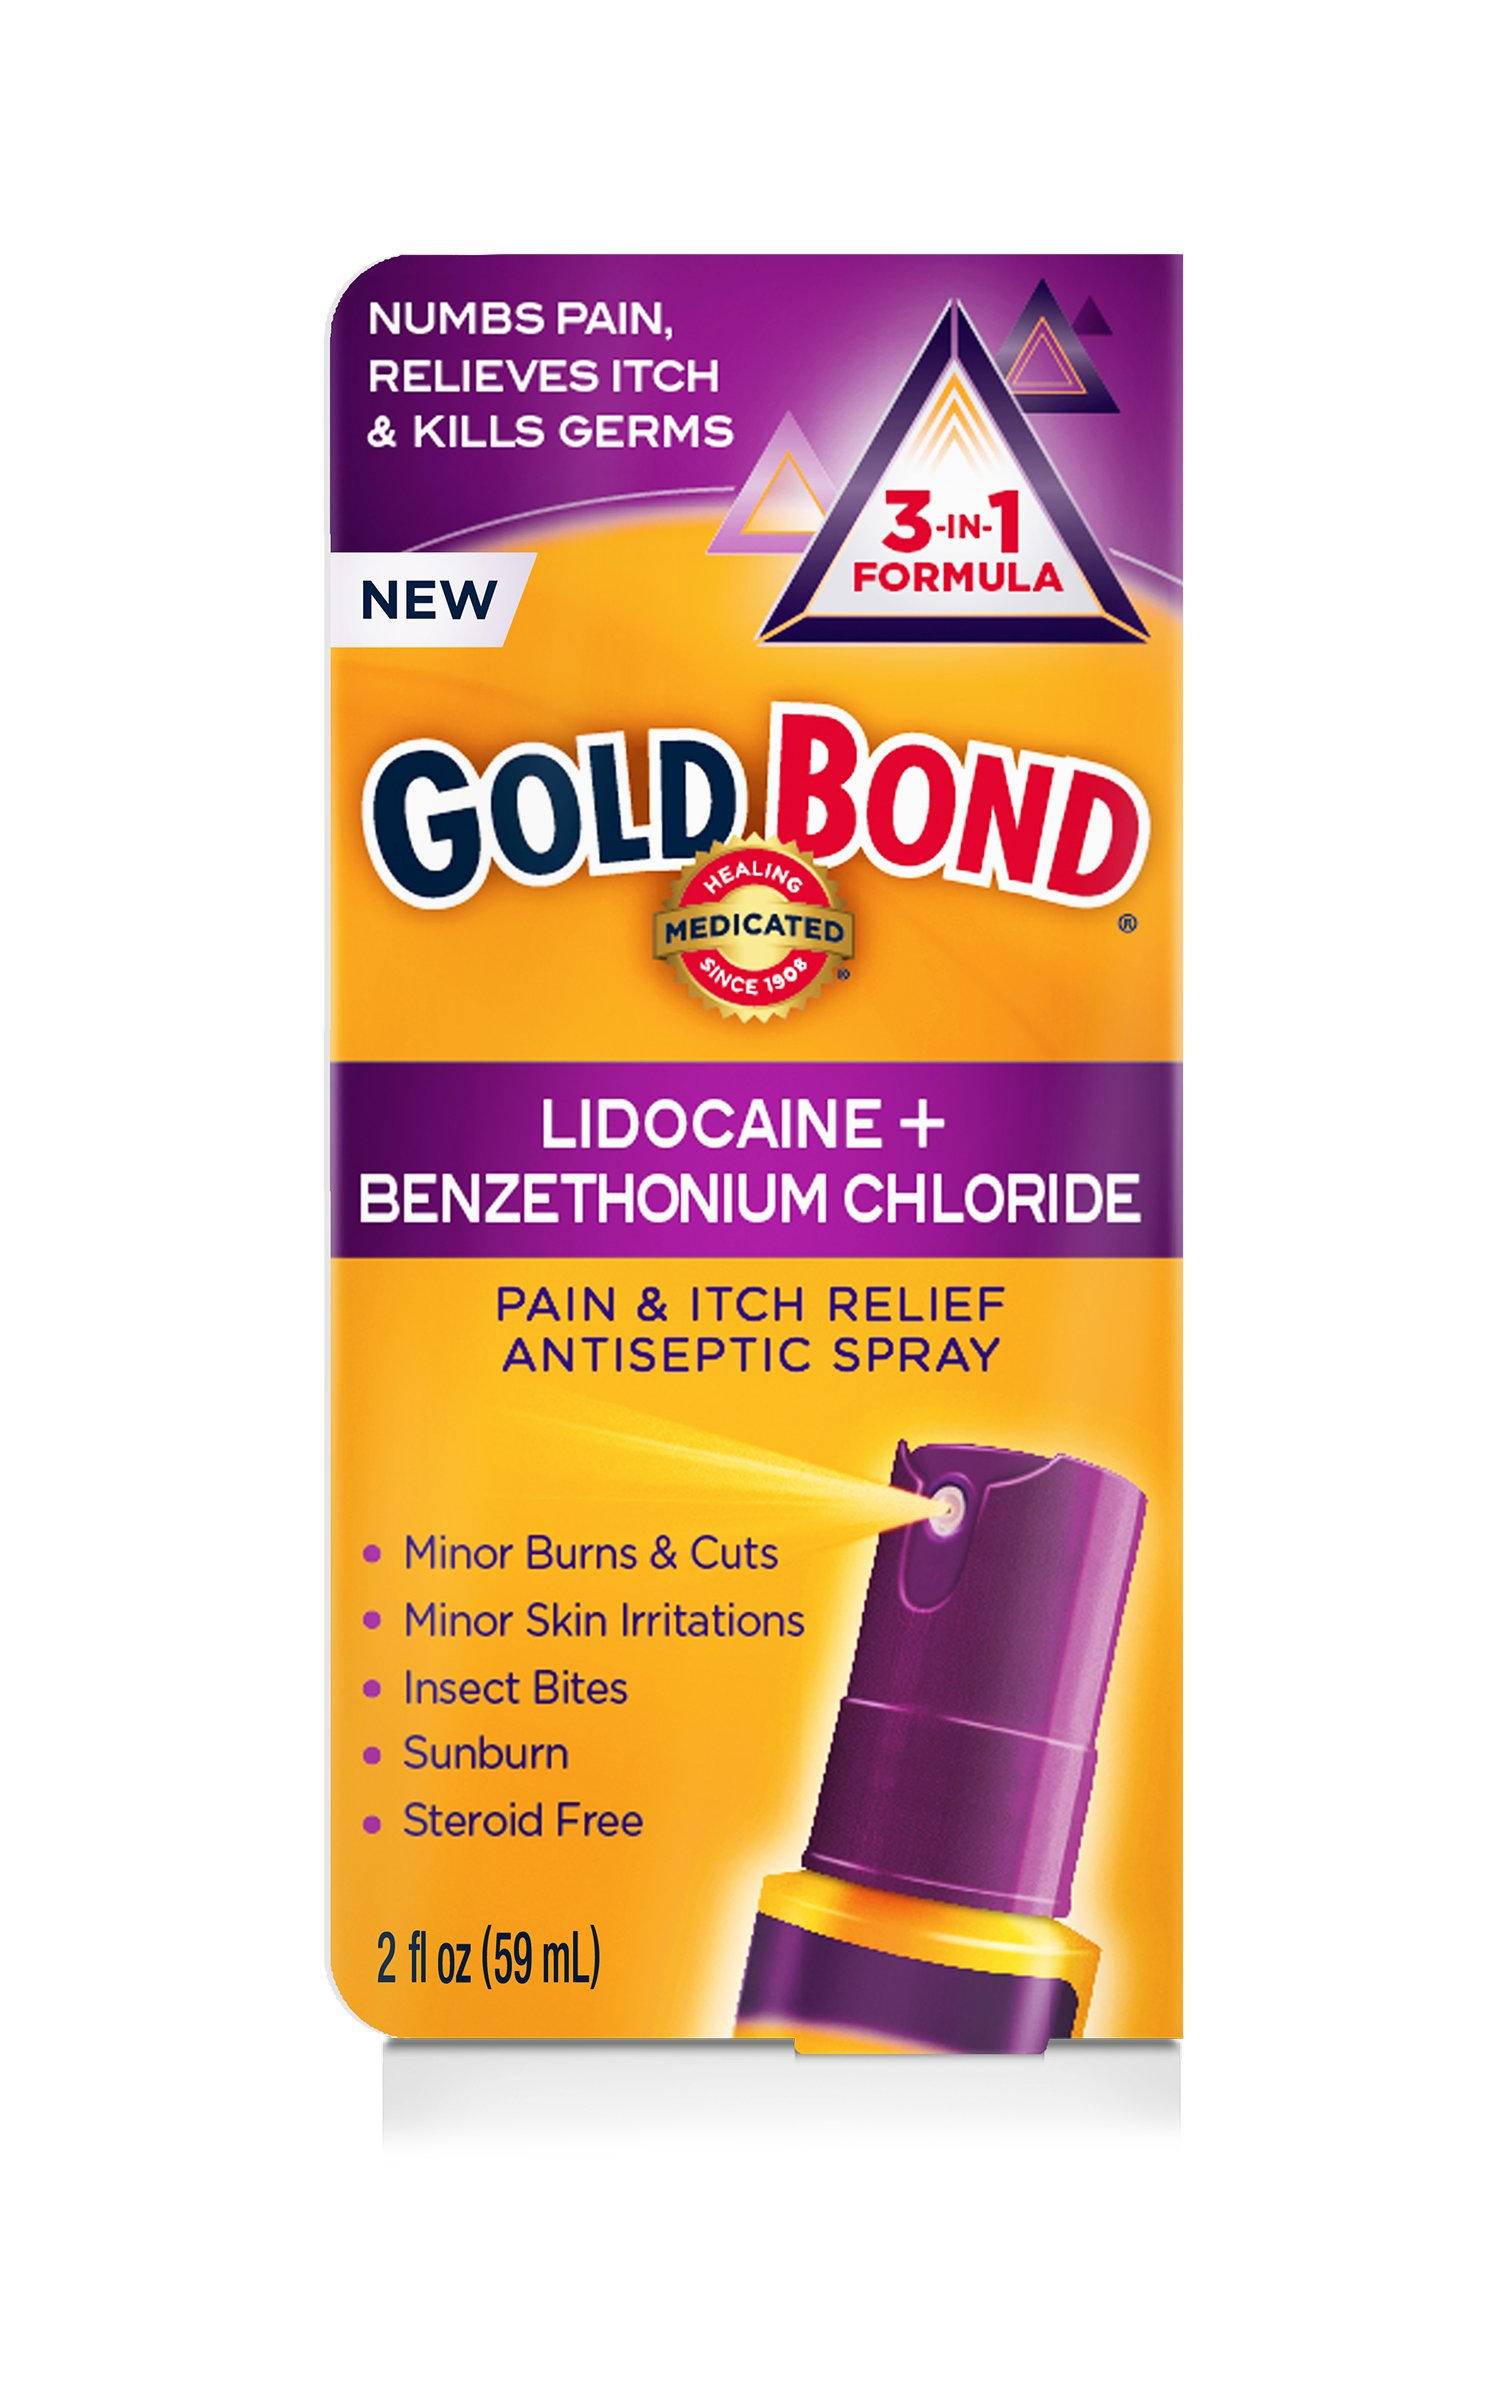 Gold Bond Pain & Itch Relief Antiseptic Spray with 4% Lidocaine, 2 Ounce Spray Bottle (Pack of 2) by Gold Bond